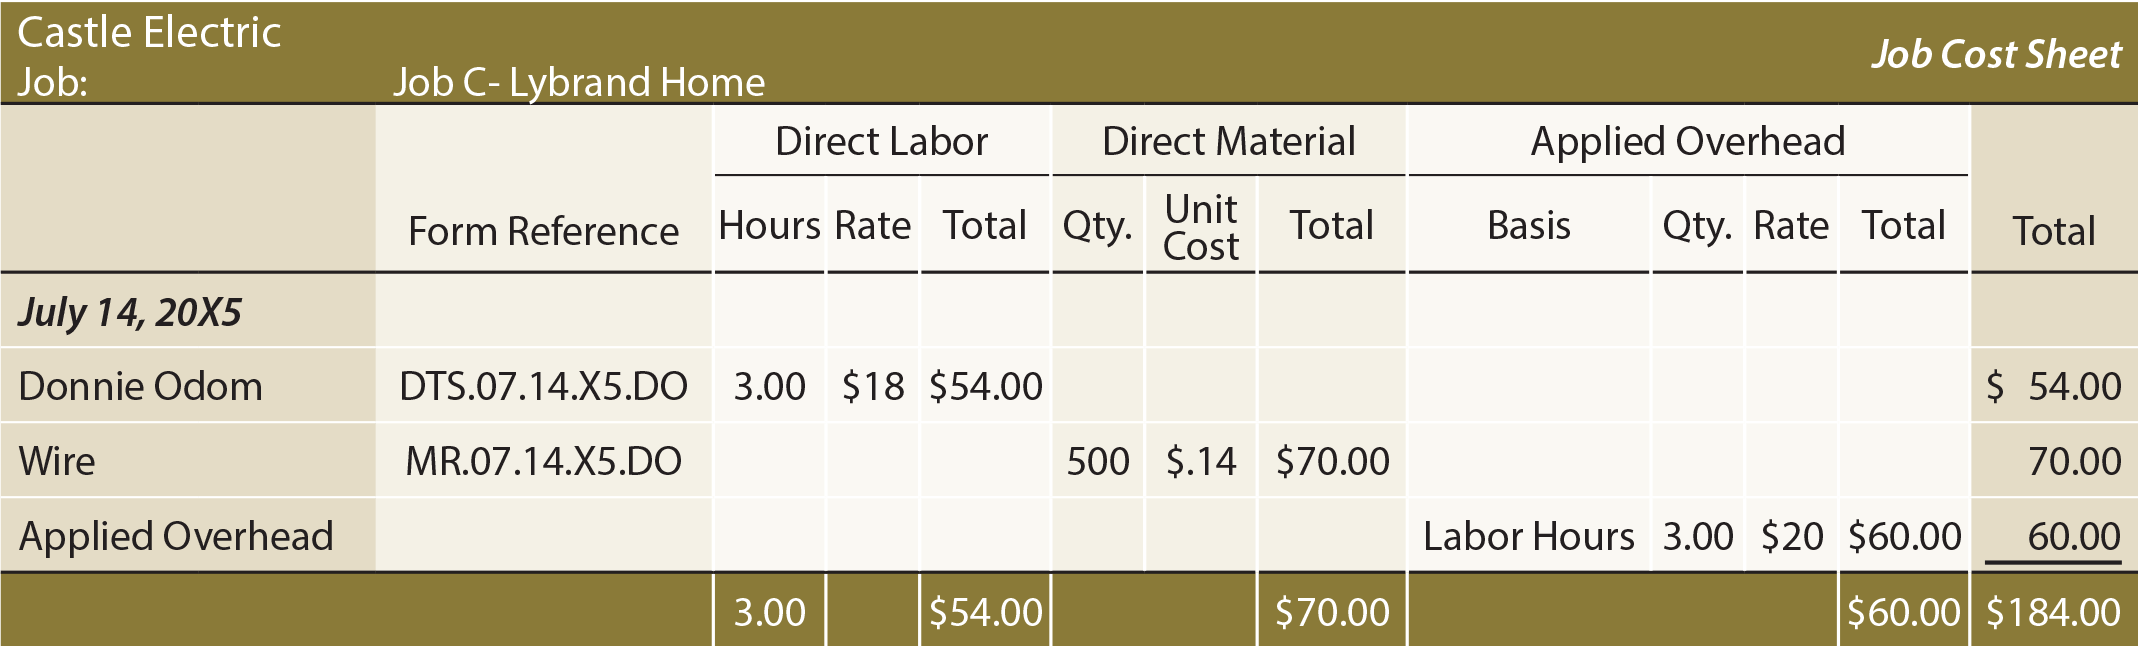 Job Costing Sheet - Job C